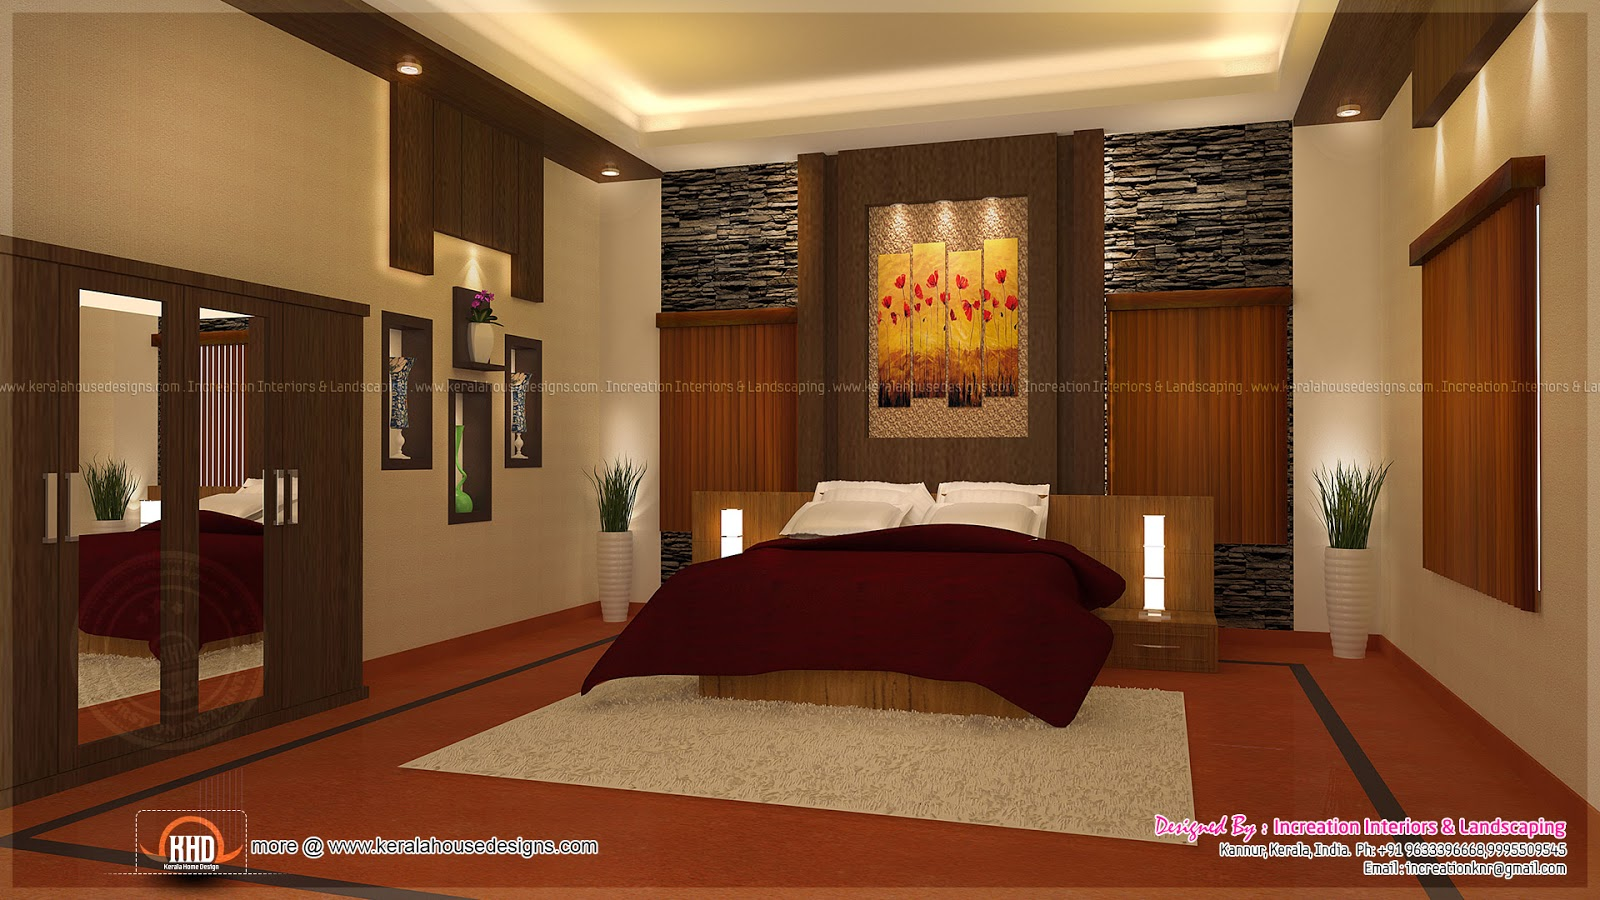 Master bedroom interior for Foyer designs for apartments india